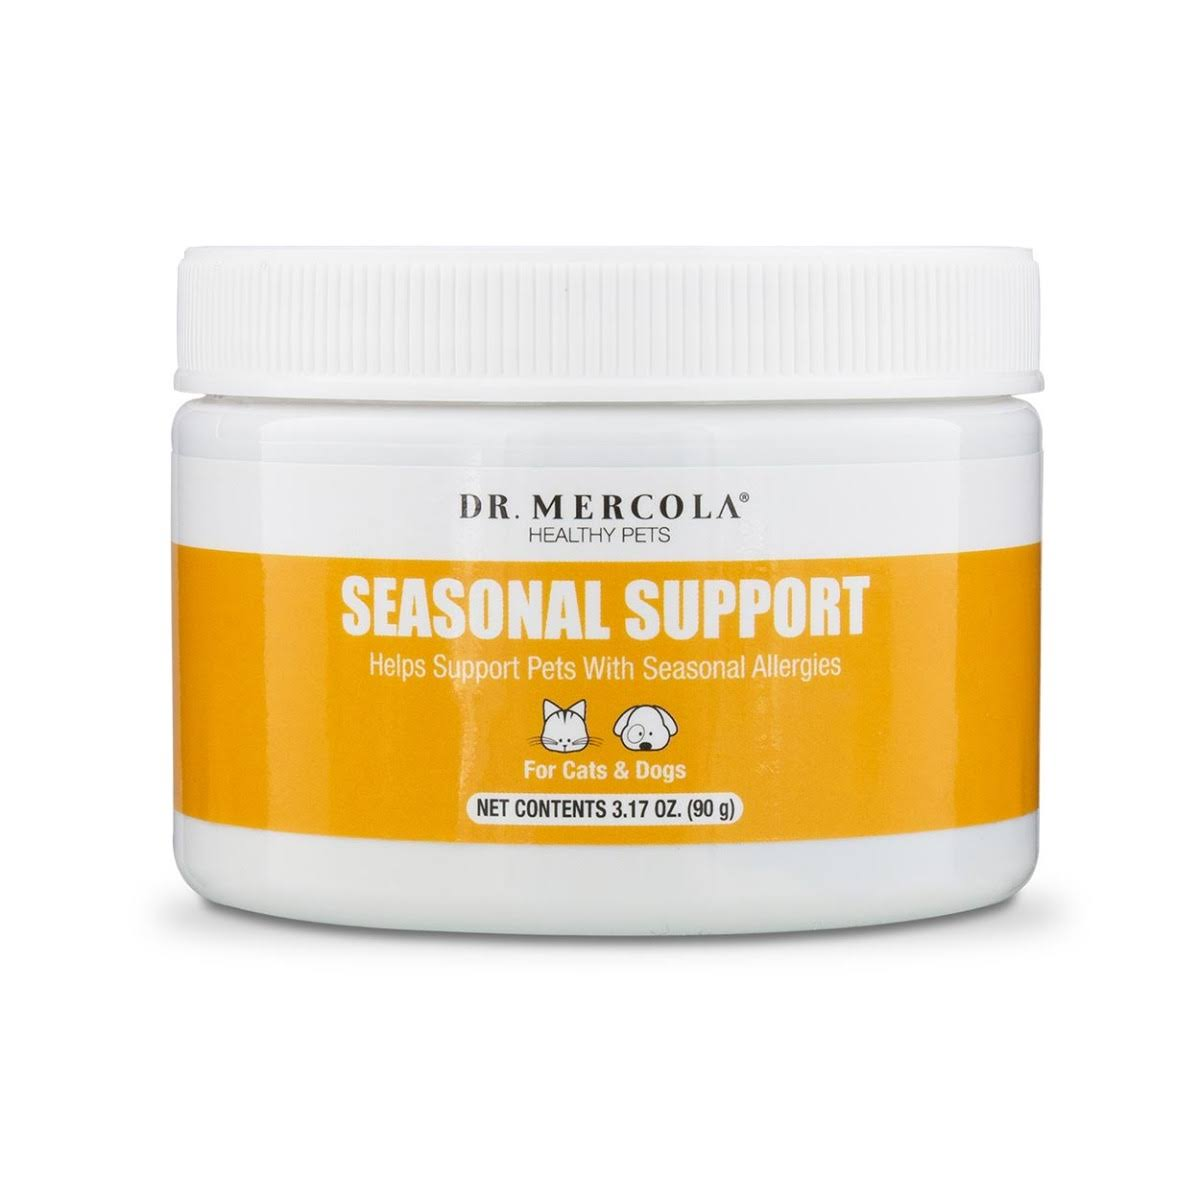 Dr Mercola Healthy Pets Seasonal Support - 3.17oz